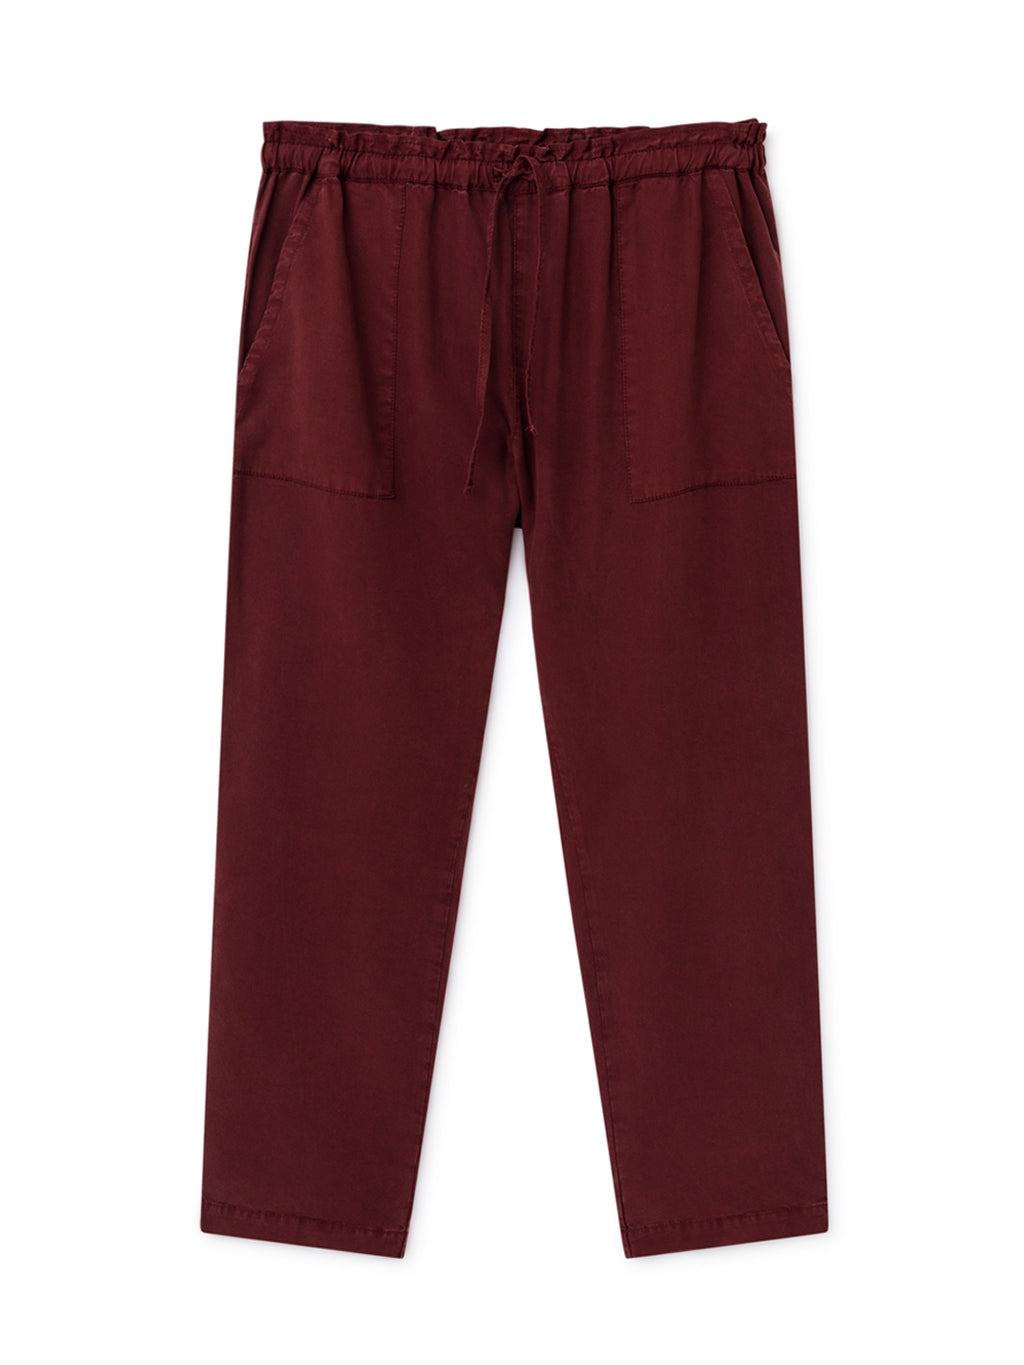 TWOTHIRDS Womens Pants: Barra - Burgundy front